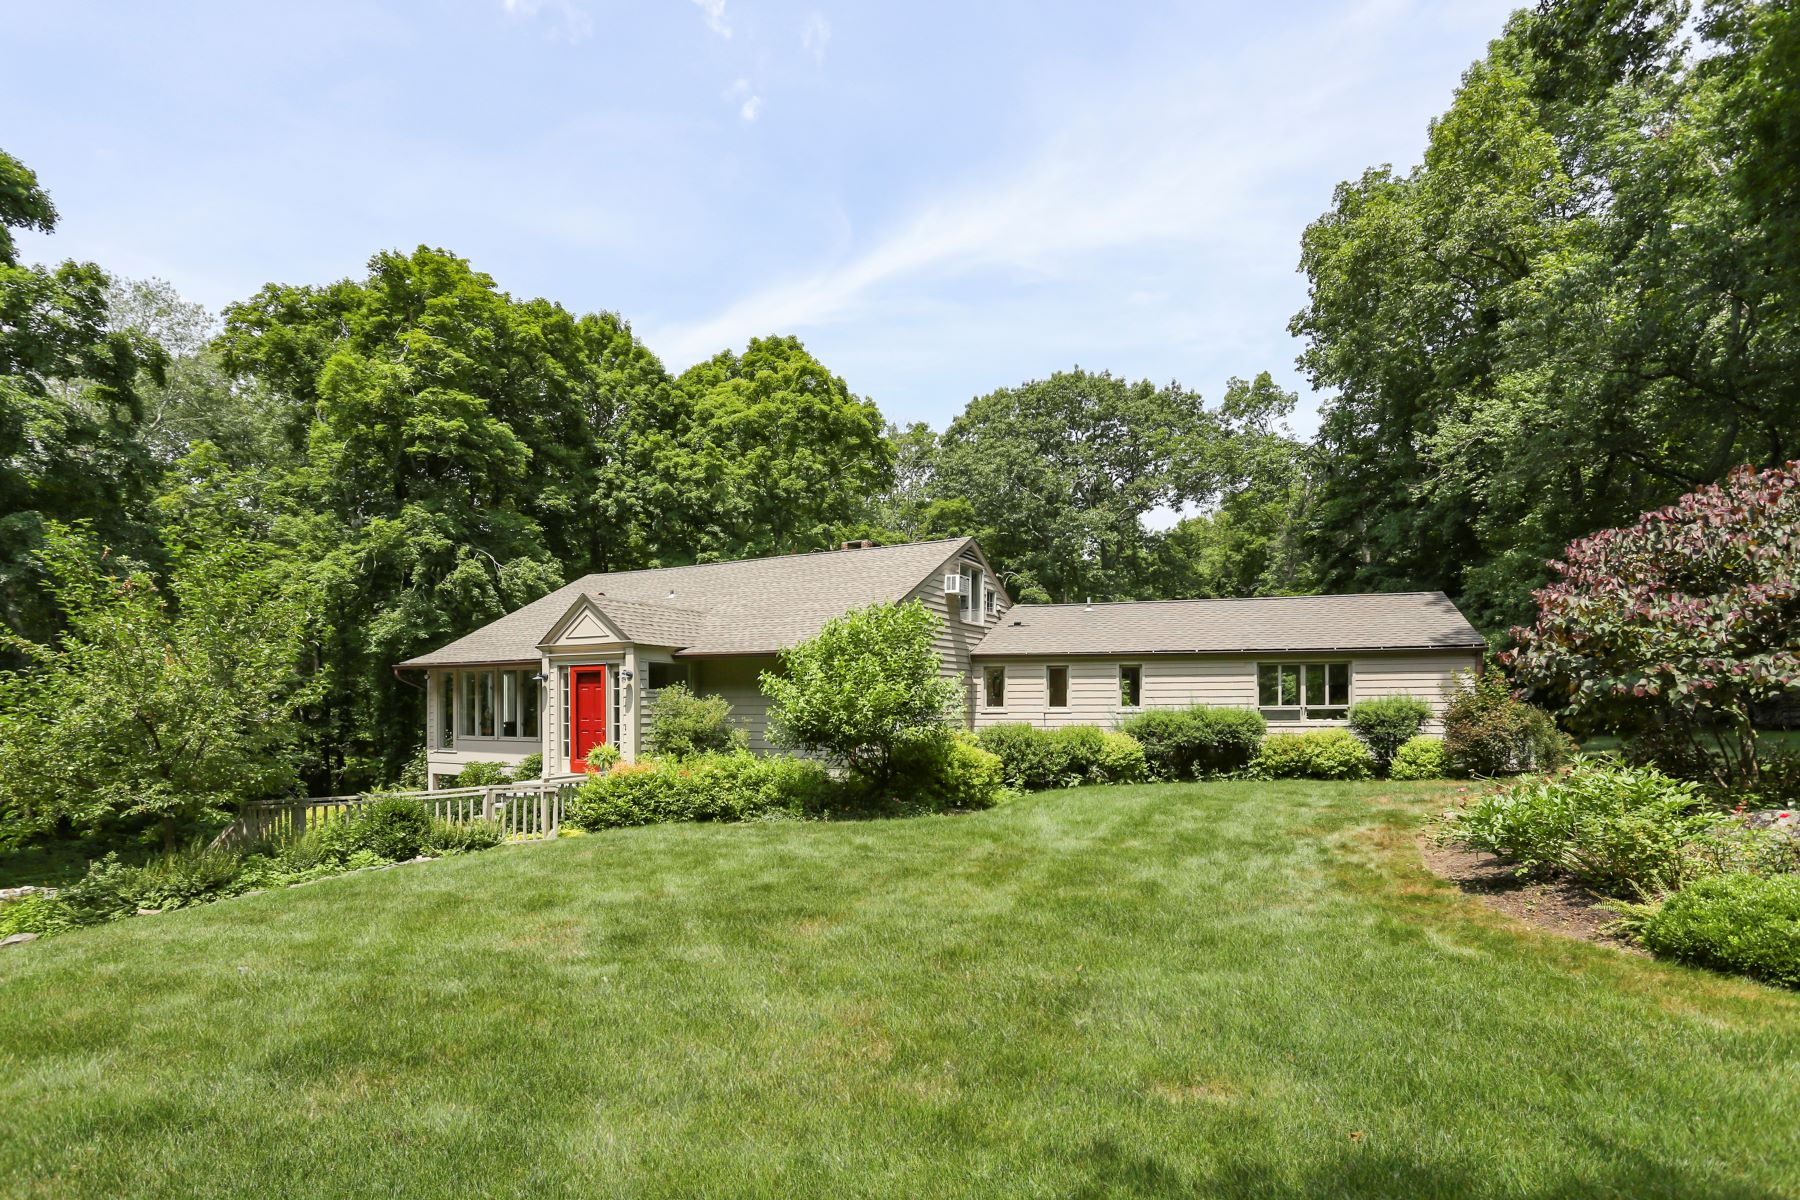 Single Family Homes for Sale at Enjoy This Charming Ranch Style Home 86 Godfrey Road West Weston, Connecticut 06883 United States